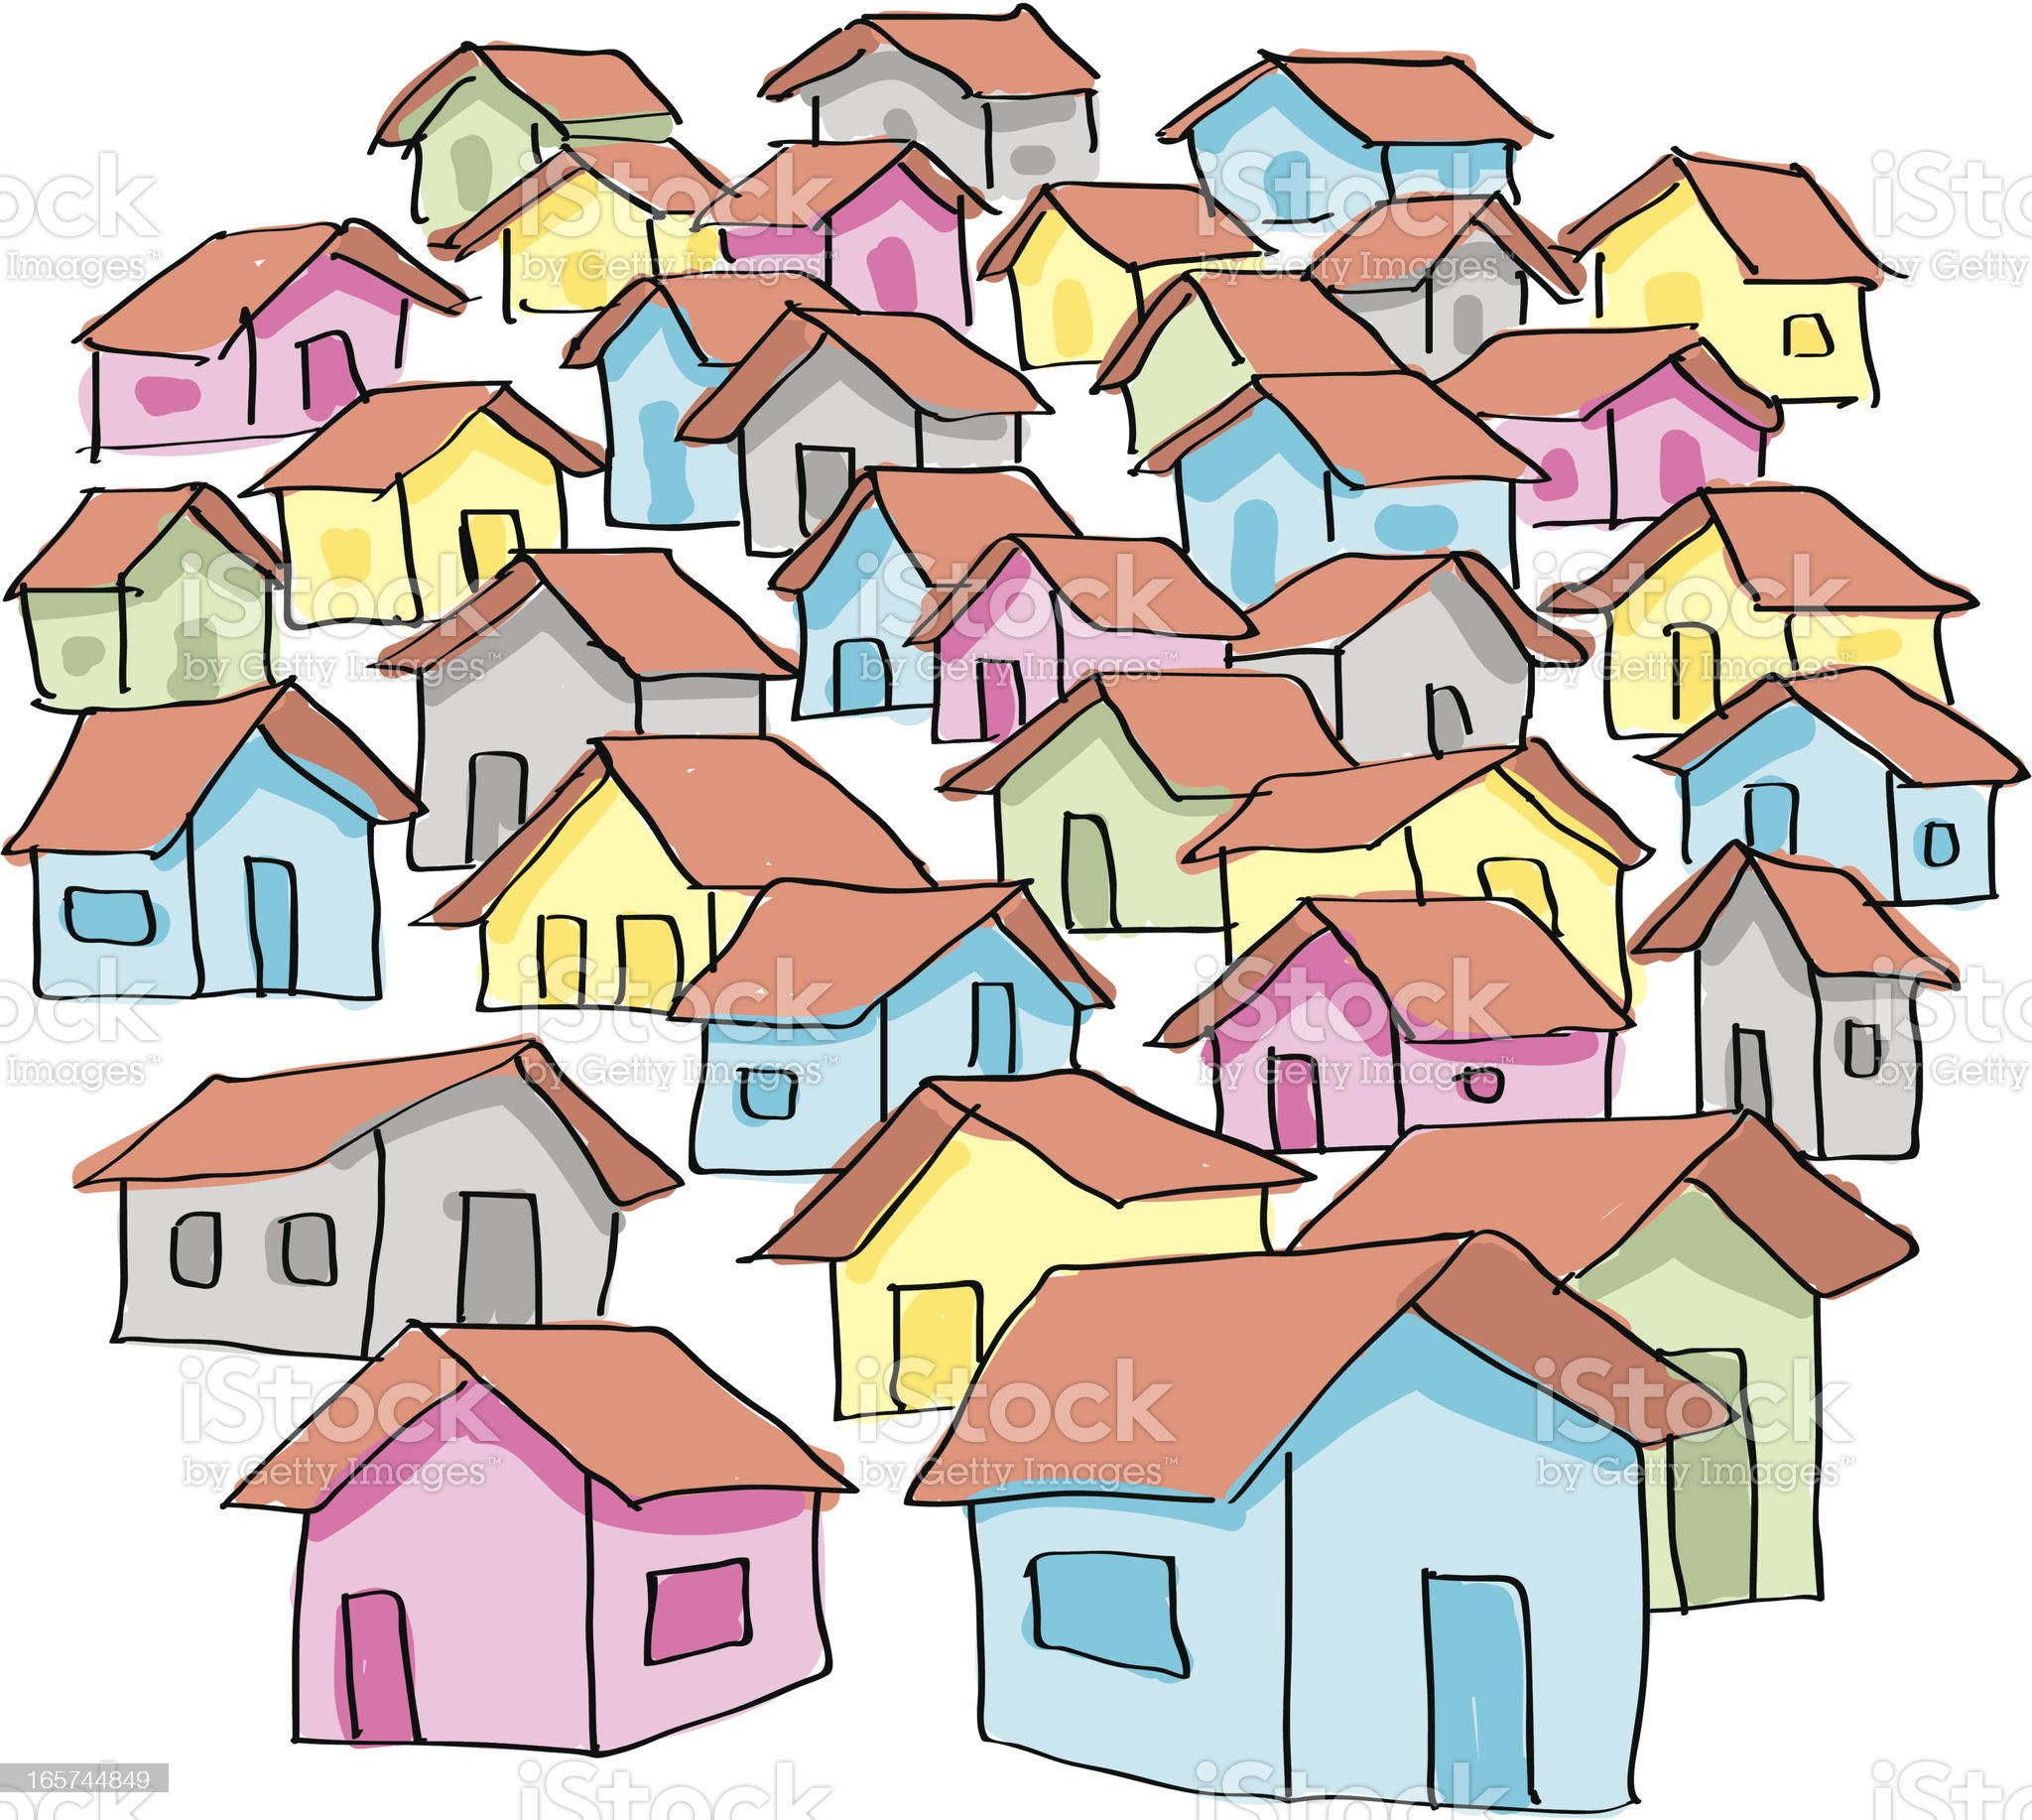 Collection of colorful cartoon houses on a white background royalty-free stock vector art